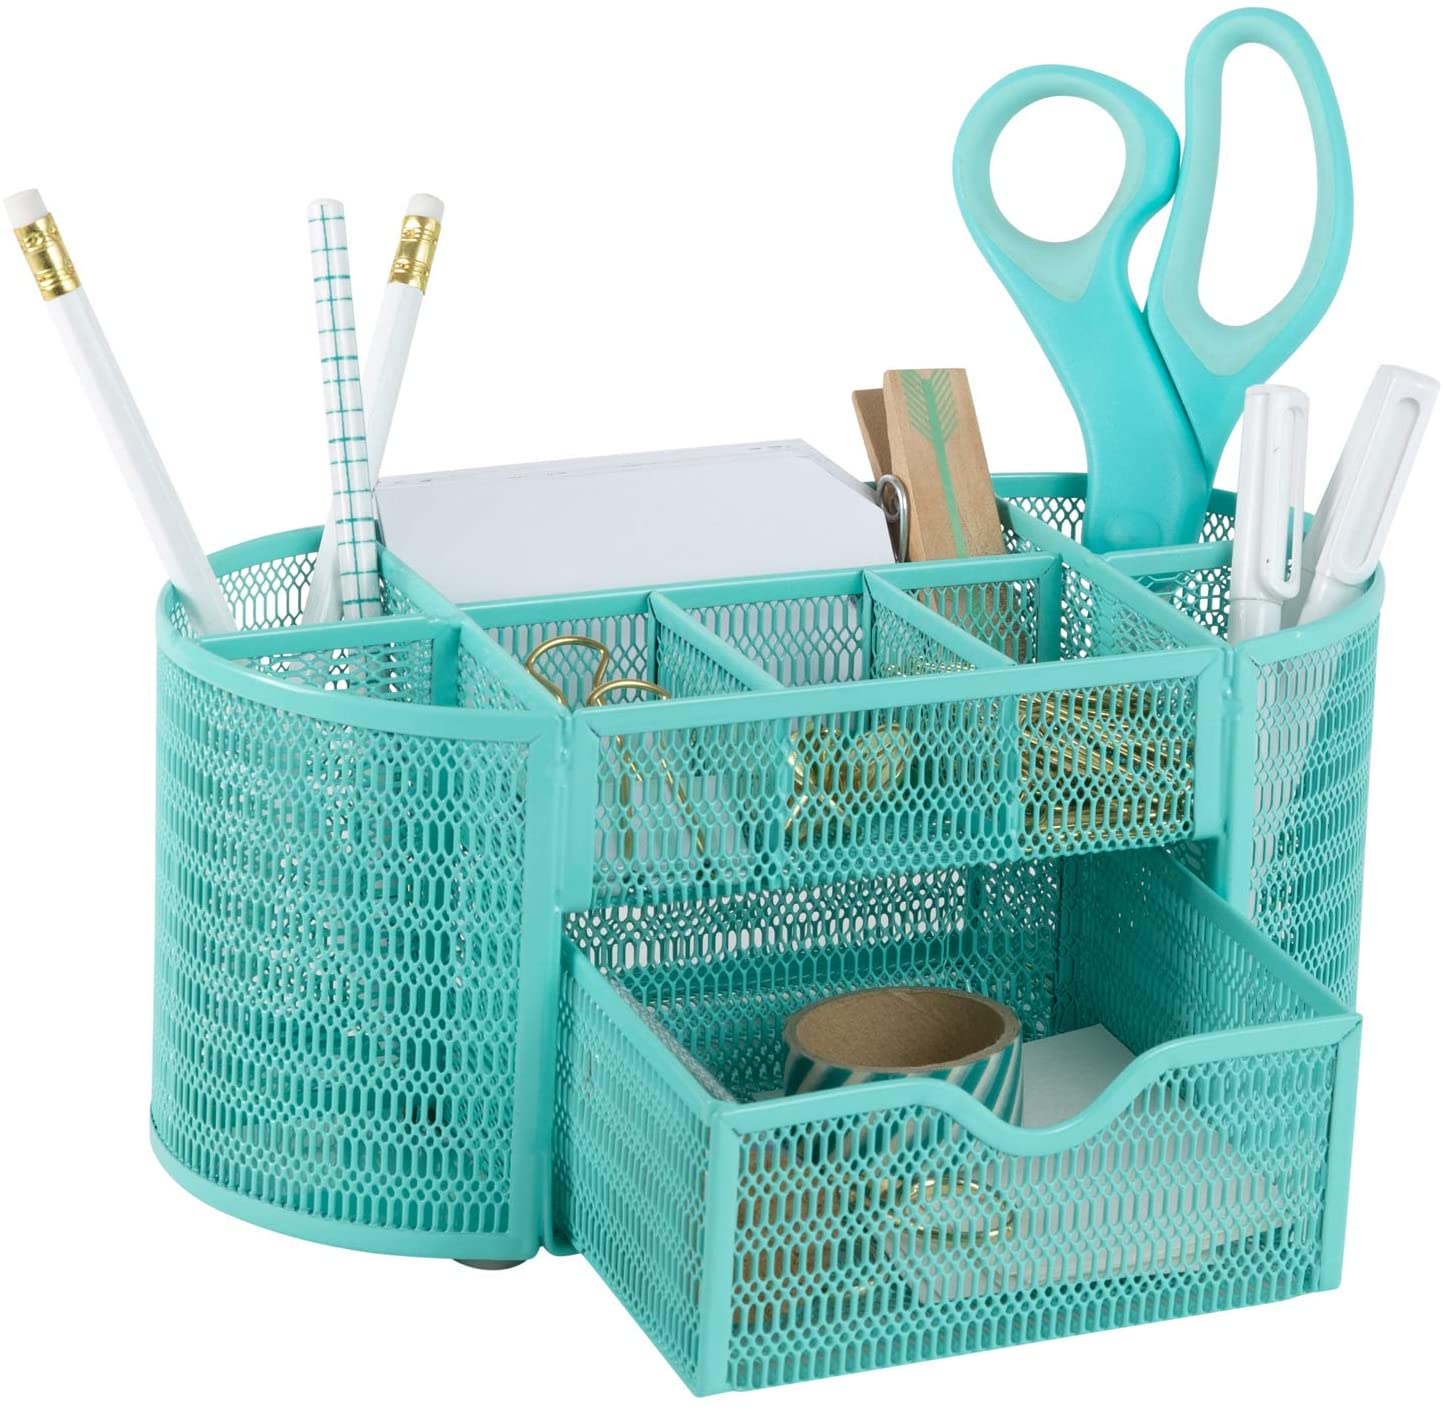 Aqua Desk Organizer - Office Decor - Made of Strong Metal with Aqua Finish - Storage for Office Supplies - Aqua Desk Organizer - Aqua Desk Organizers for Home or Office